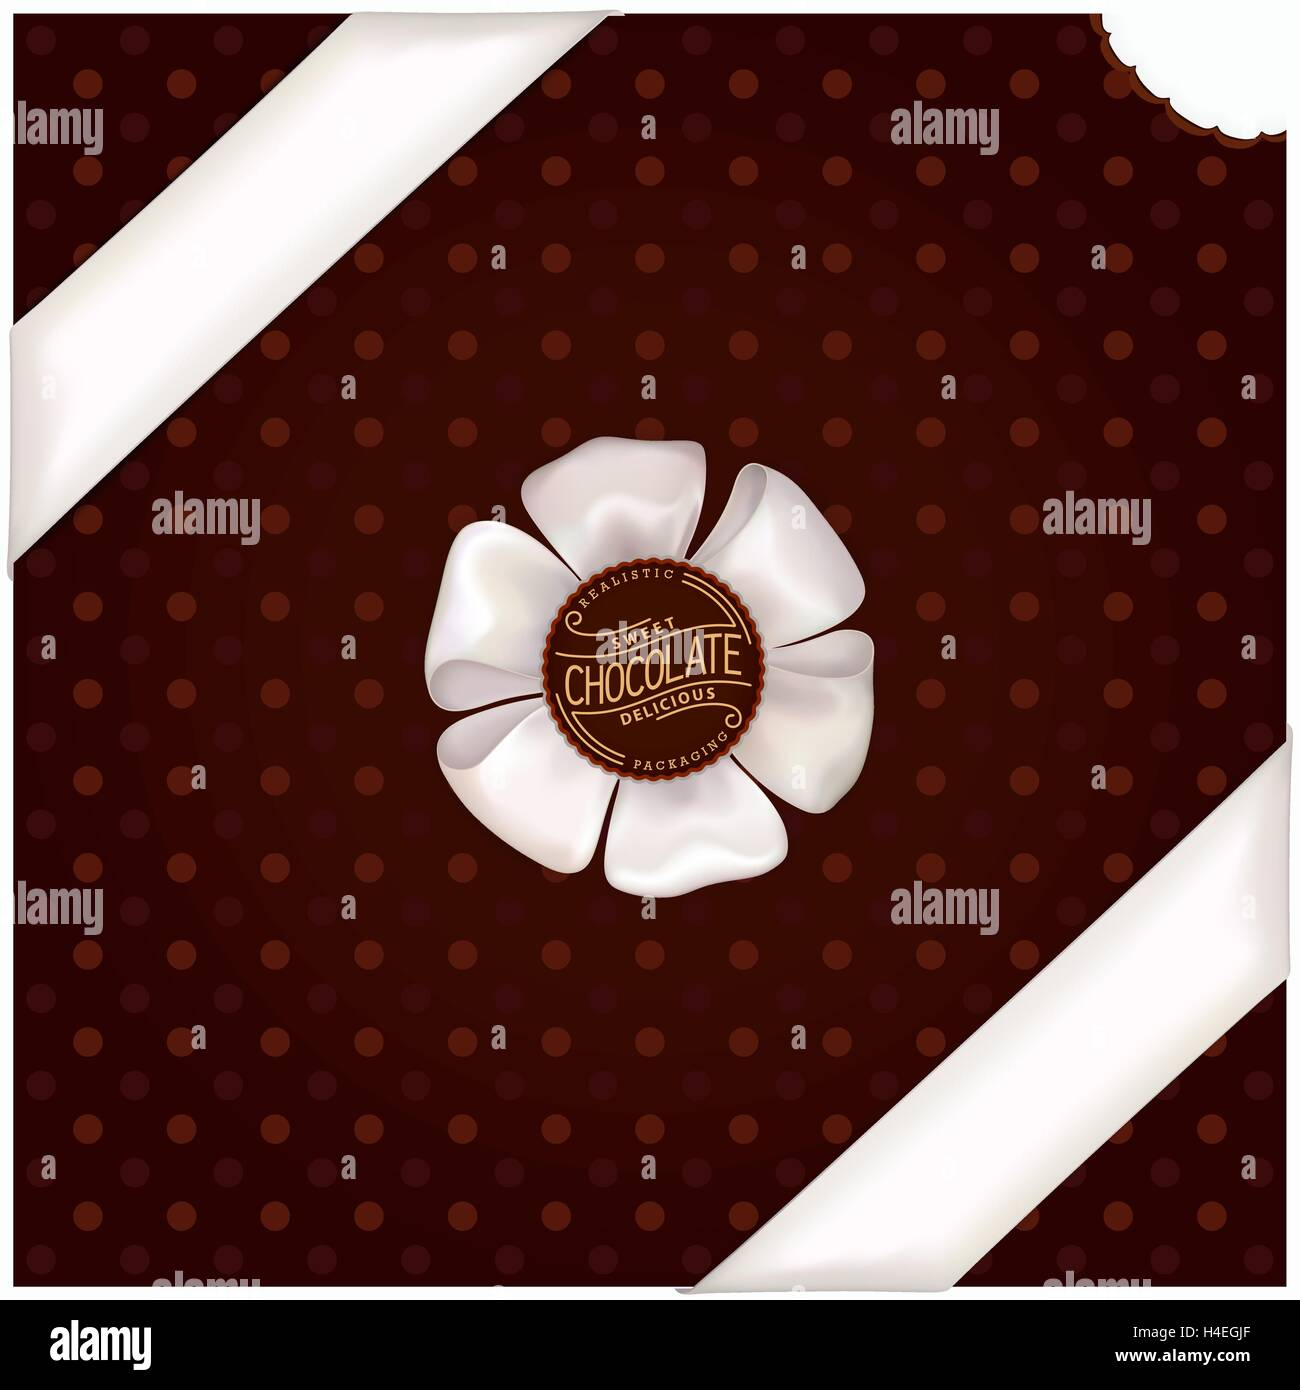 Chocolate wrapping design - Stock Vector